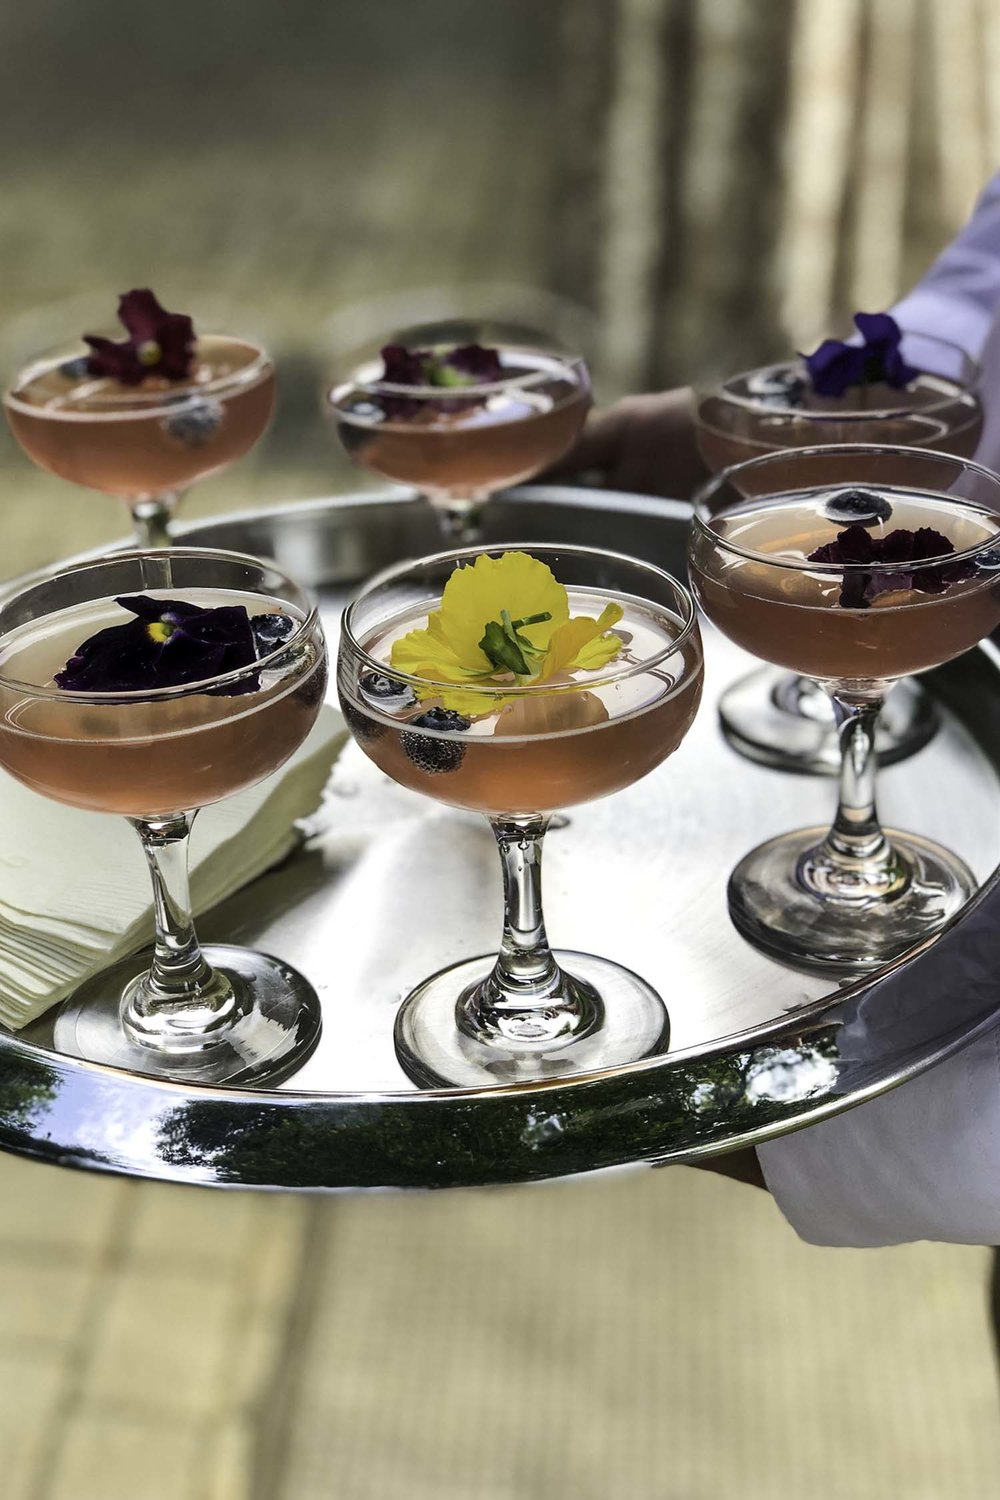 Beverage Side_Cocktails on a Tray with Flowers.jpg